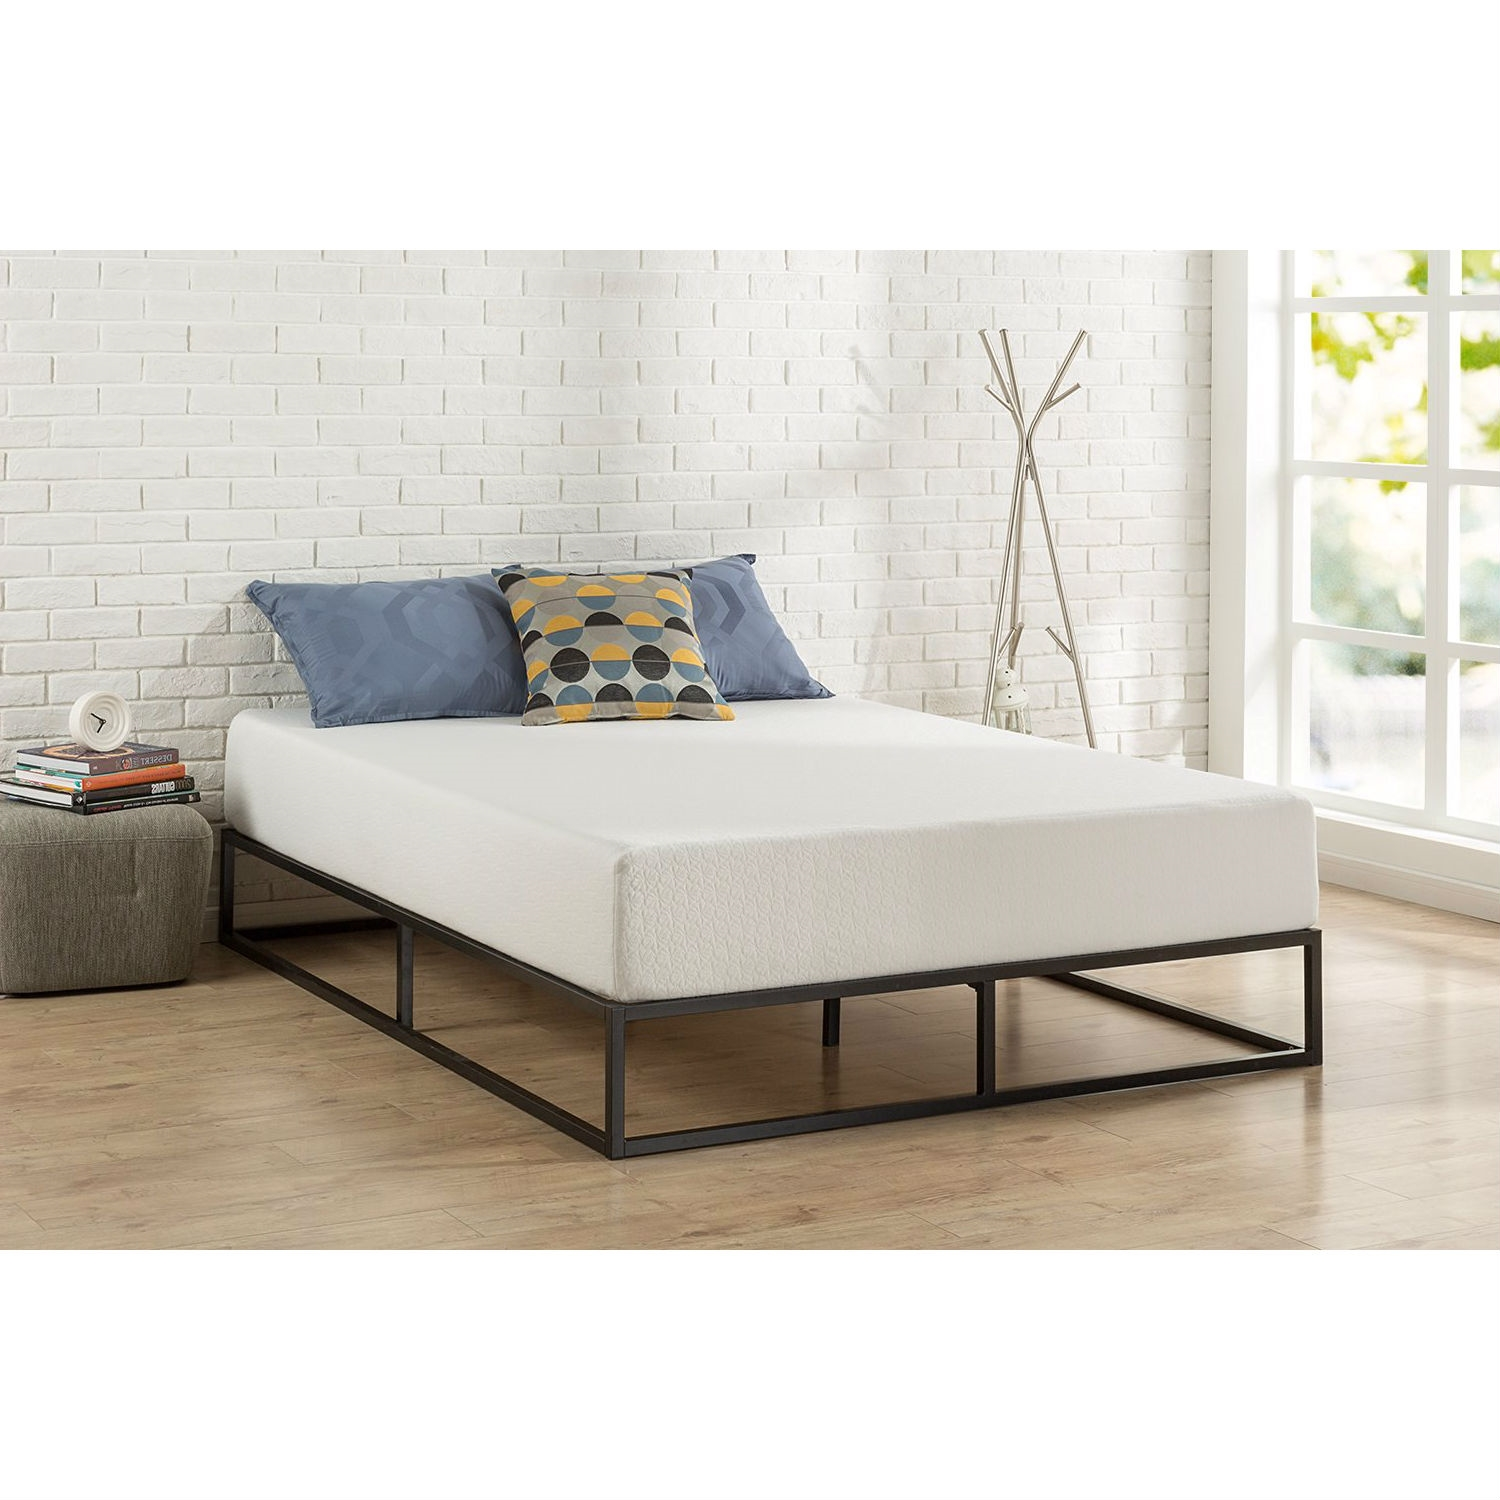 Twin Size 10 Inch Low Profile Modern Metal Platform Bed Frame With Wooden Slats